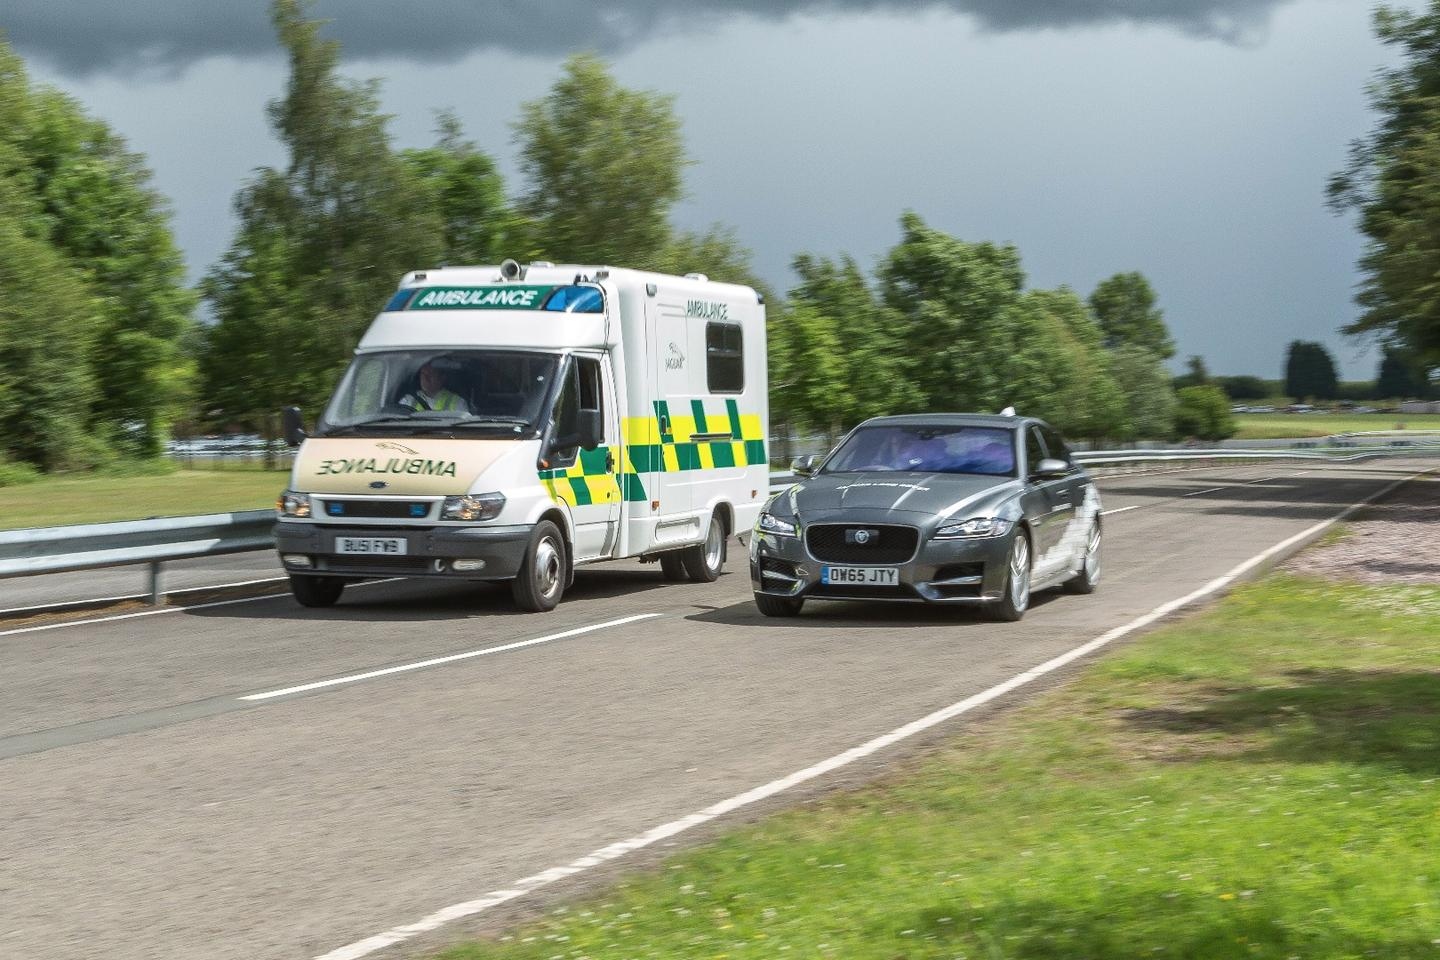 Jaguar wants to work with emergency services to make the roads safer